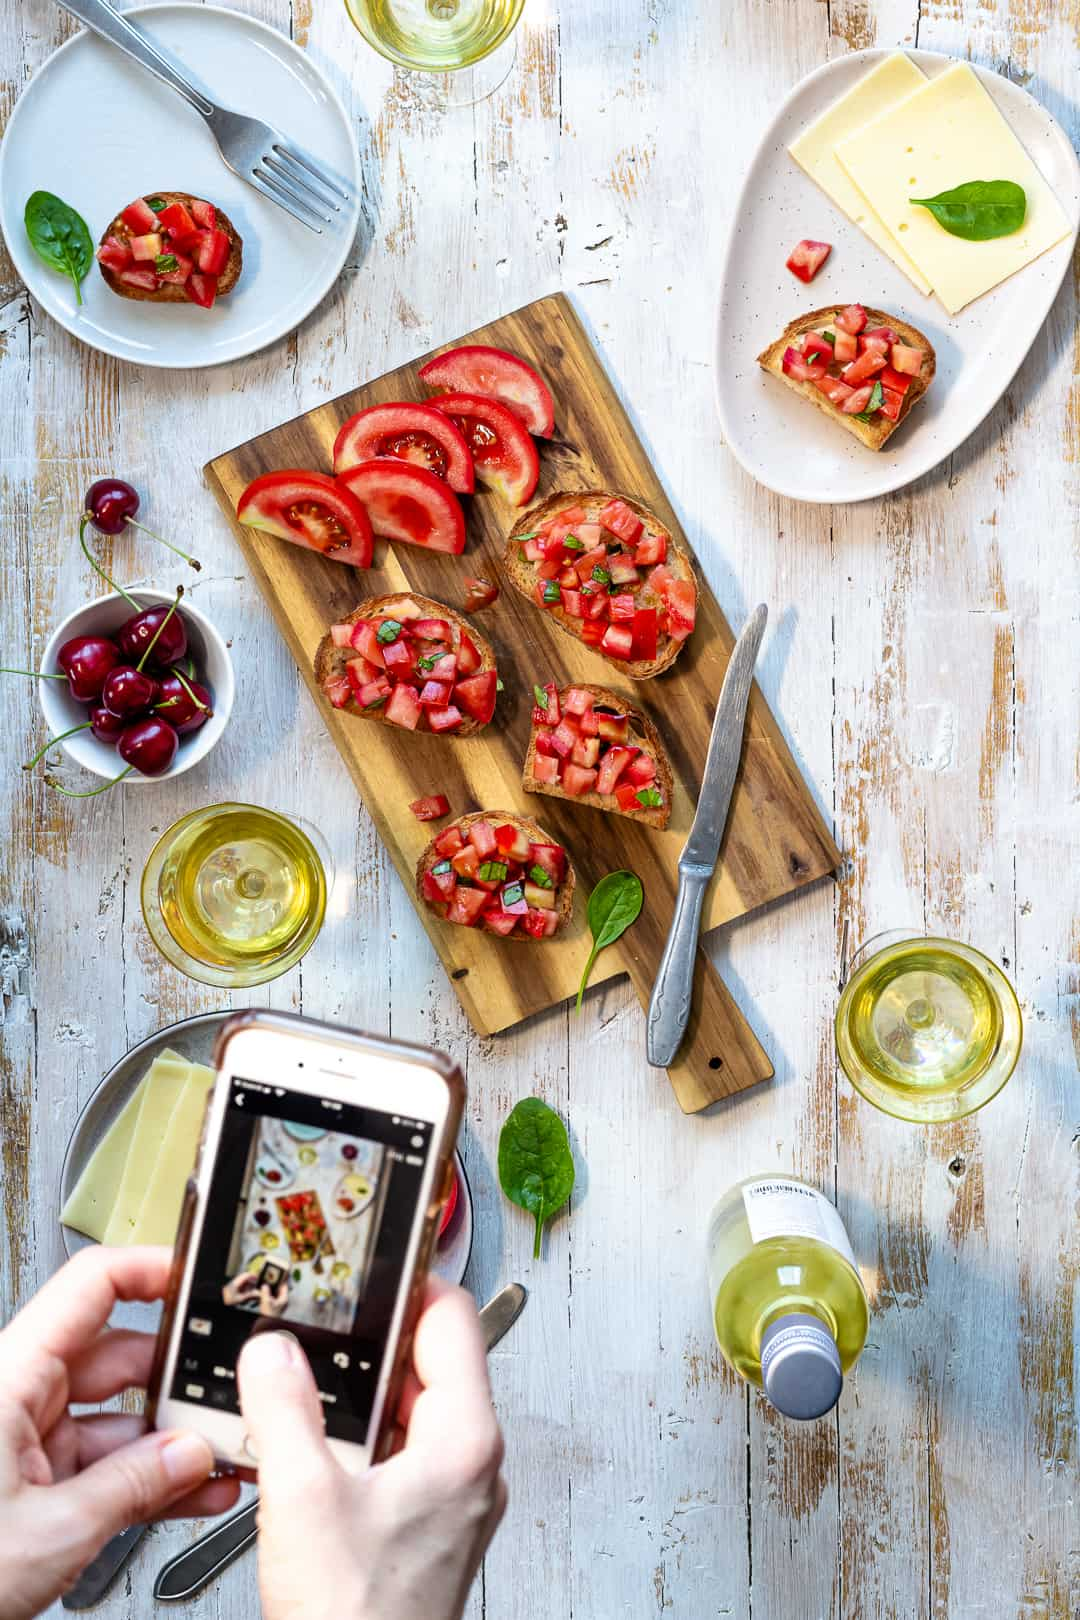 a woman taking mobile photo of a scene with bruschetta